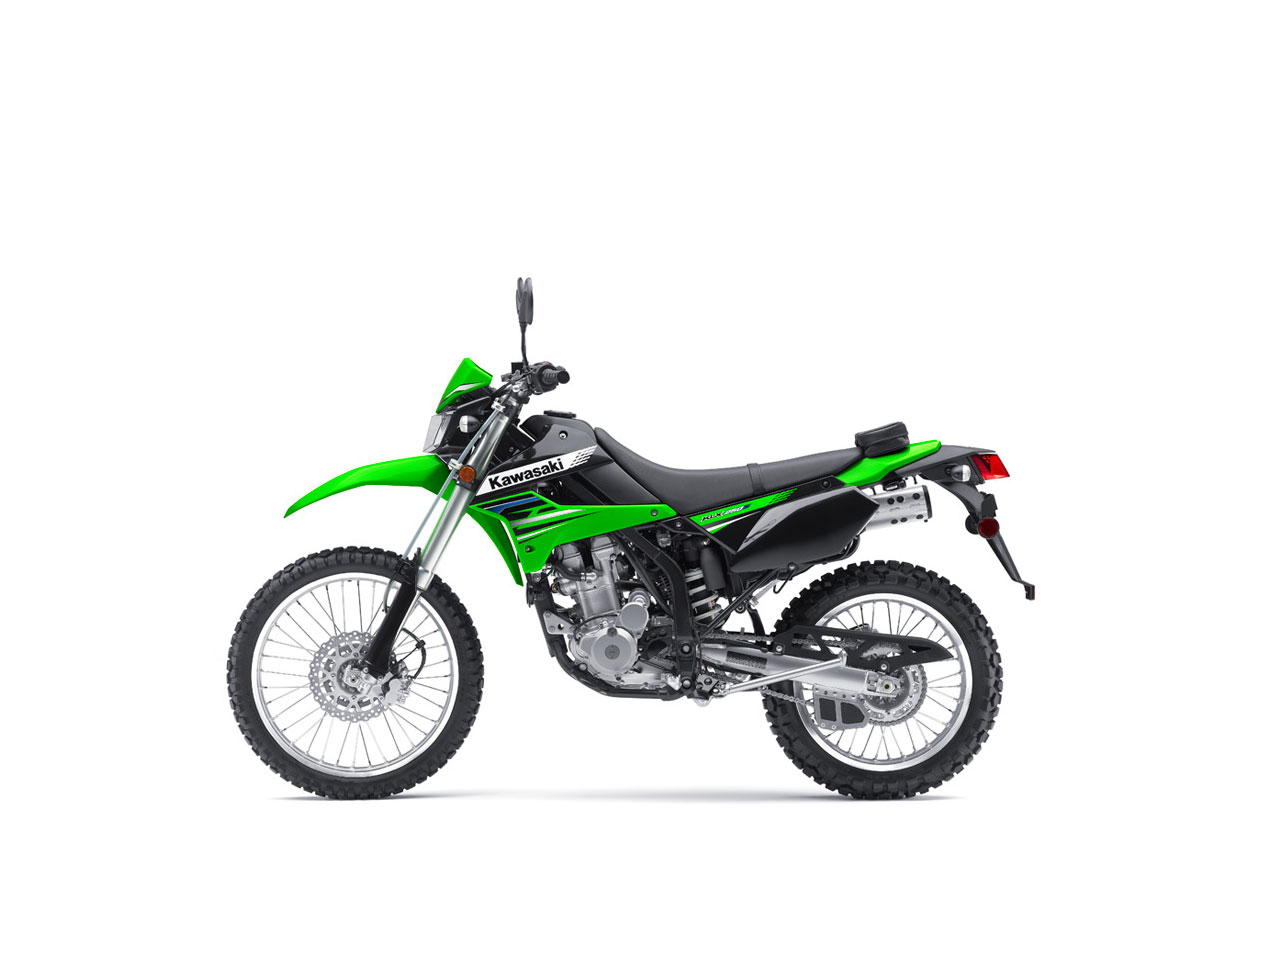 2012 Kawasaki KLX250S Review